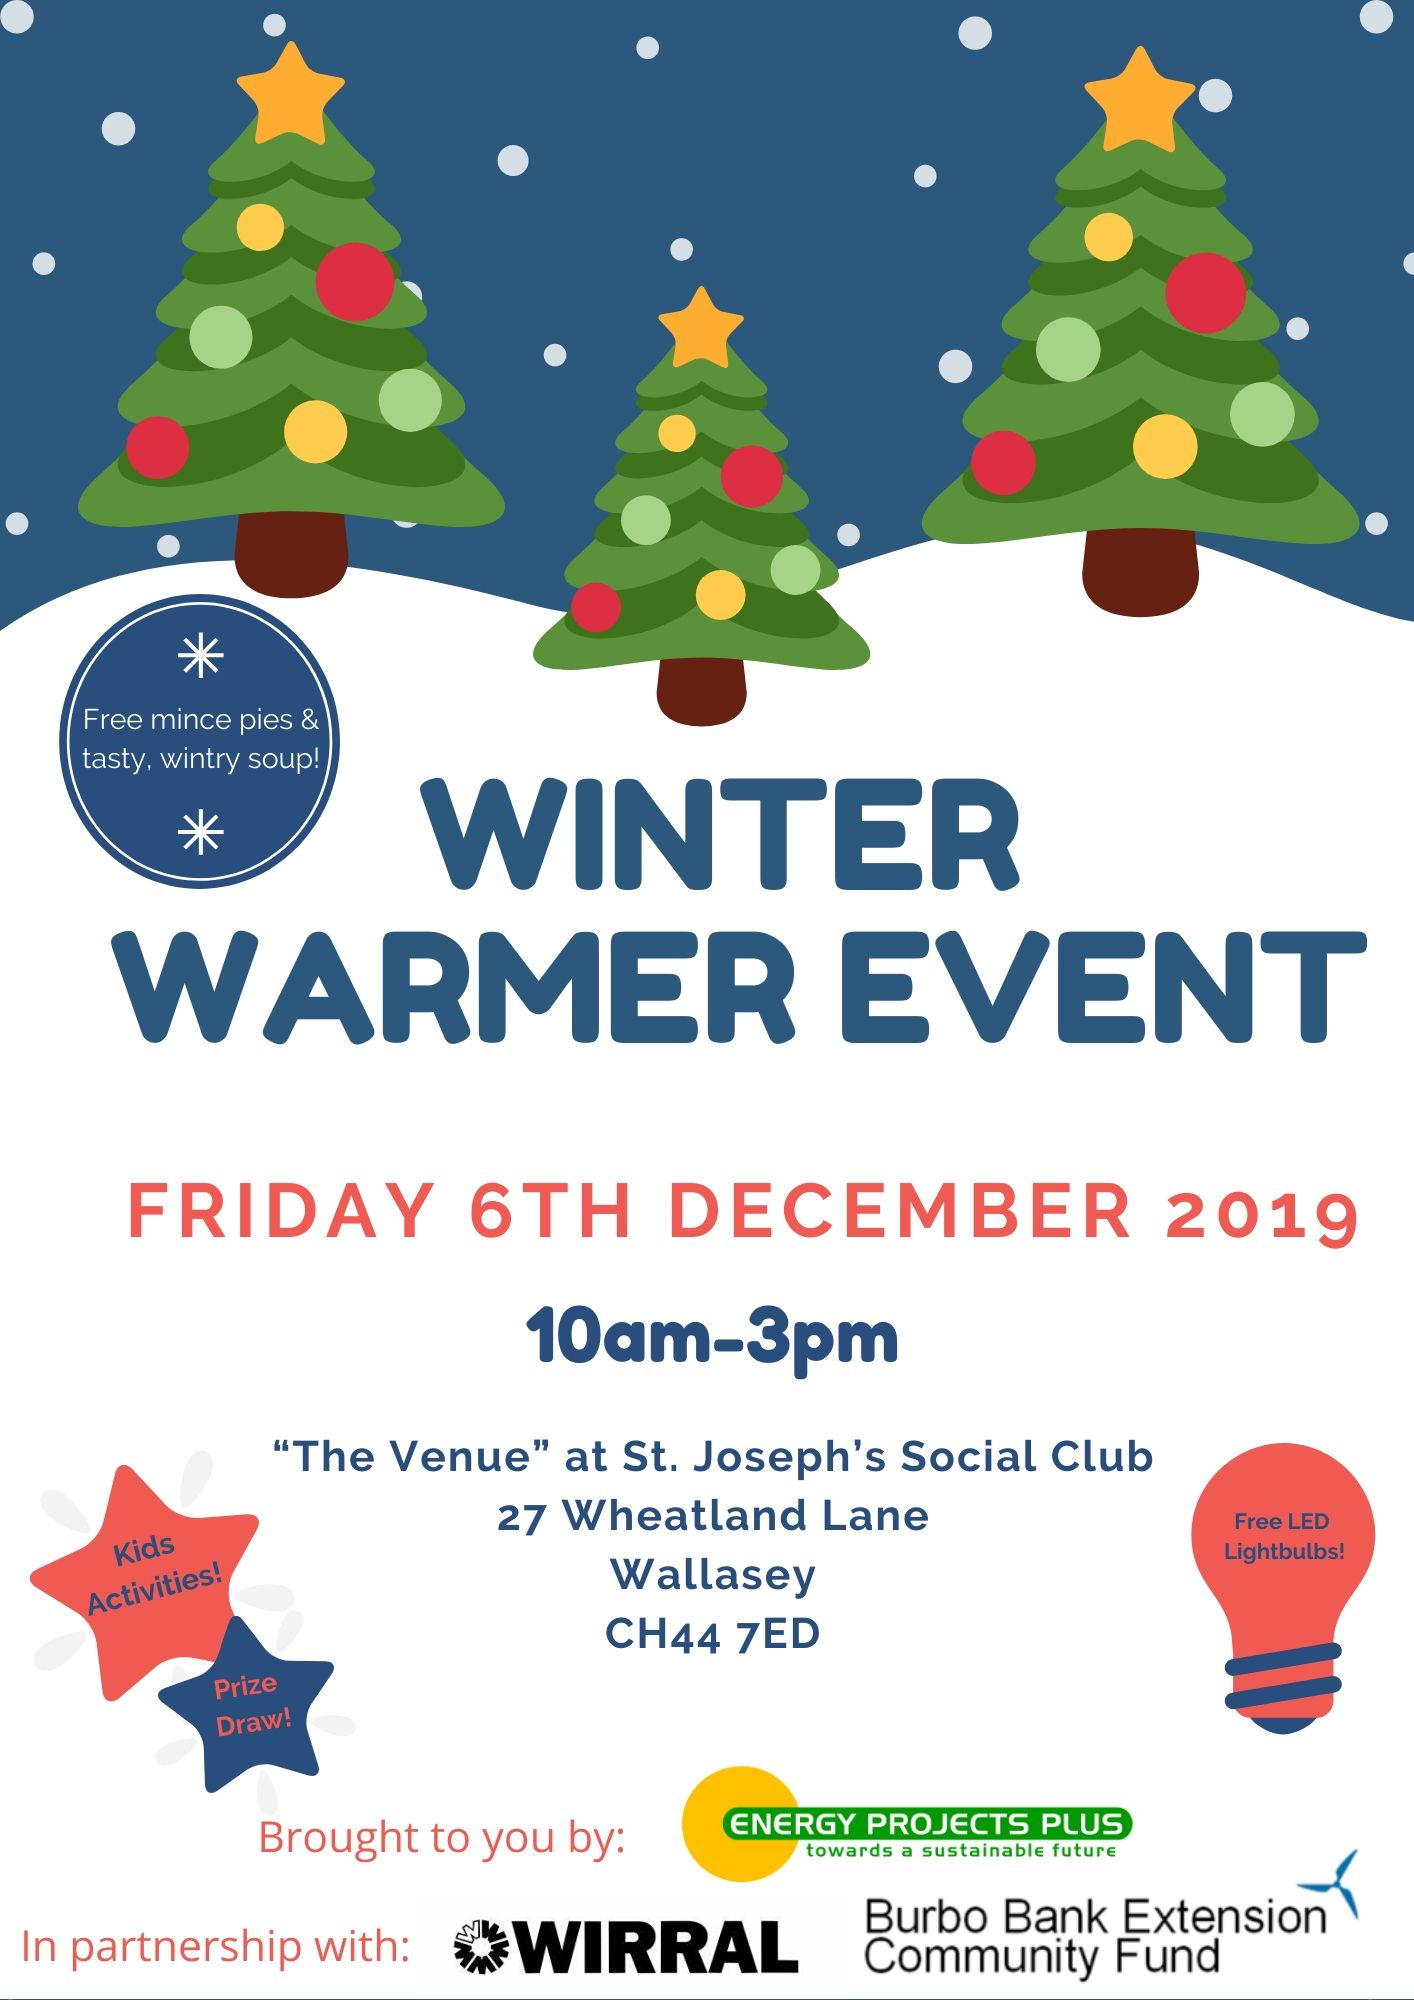 Winter Warmer Event